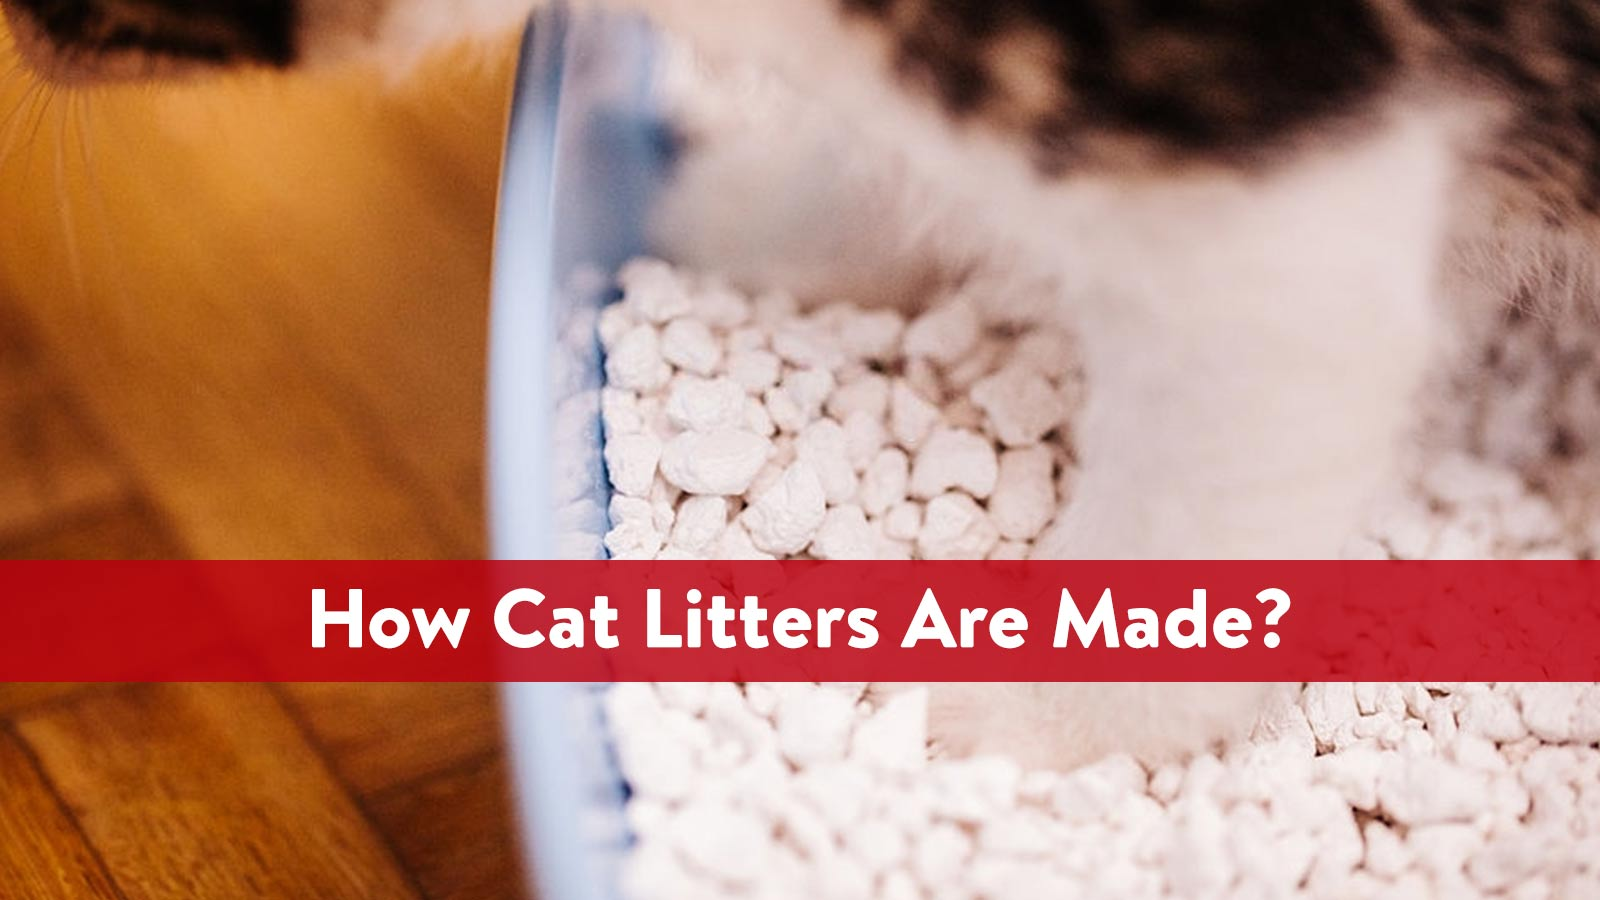 How Cat Litters Are Made